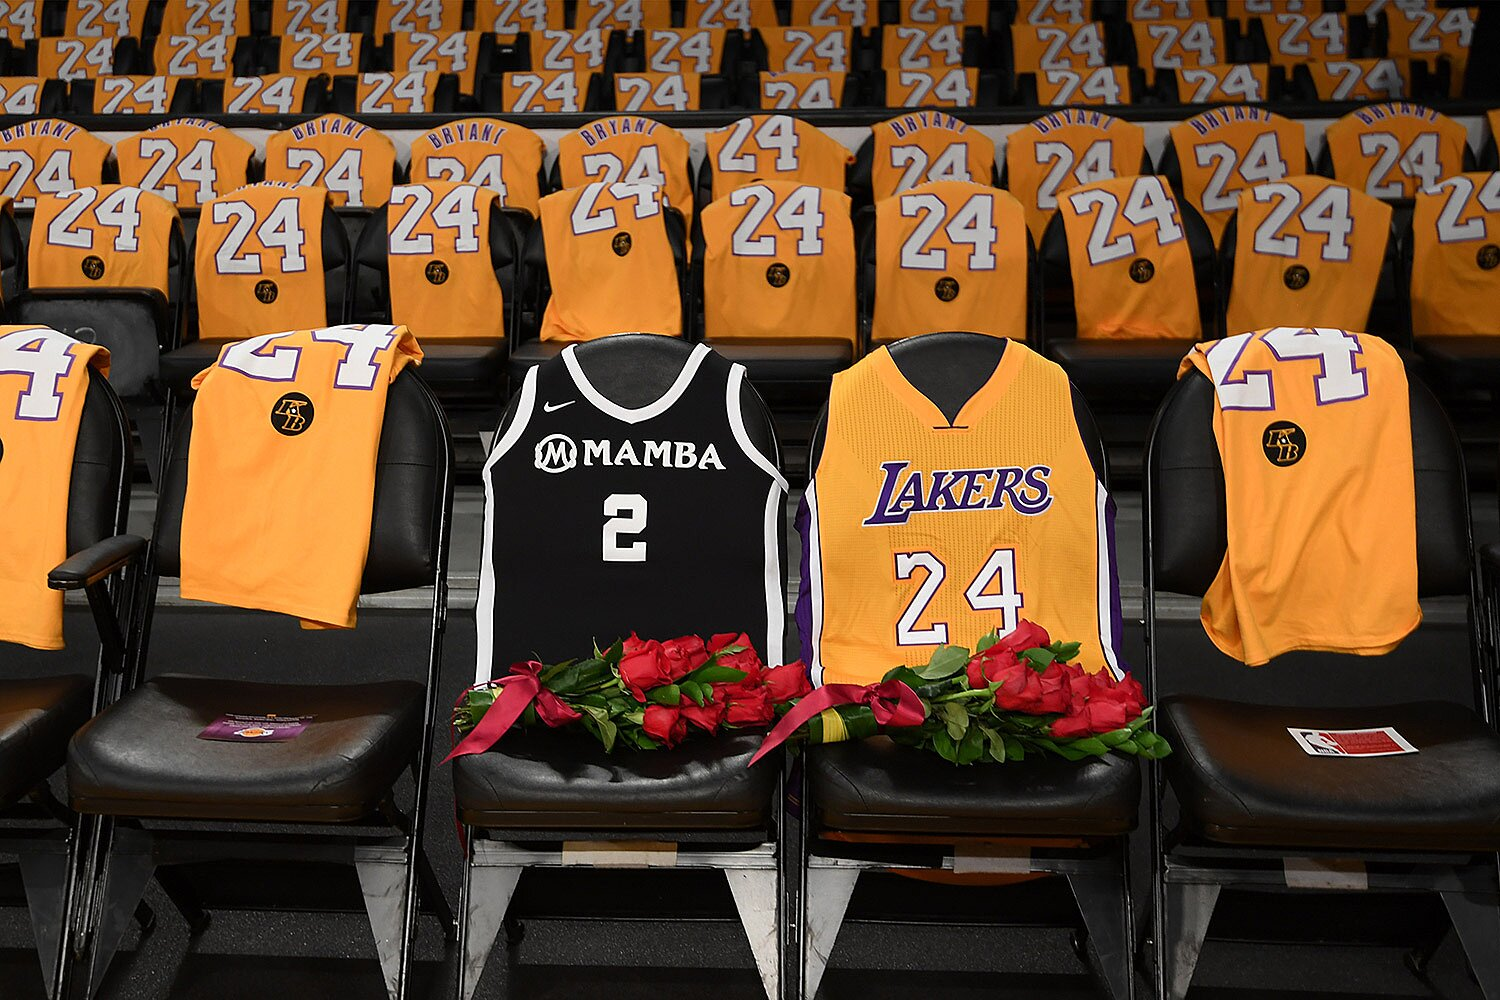 Why Kobe Bryant Changed Numbers, Meaning Behind No. 24 and No. 8 ...